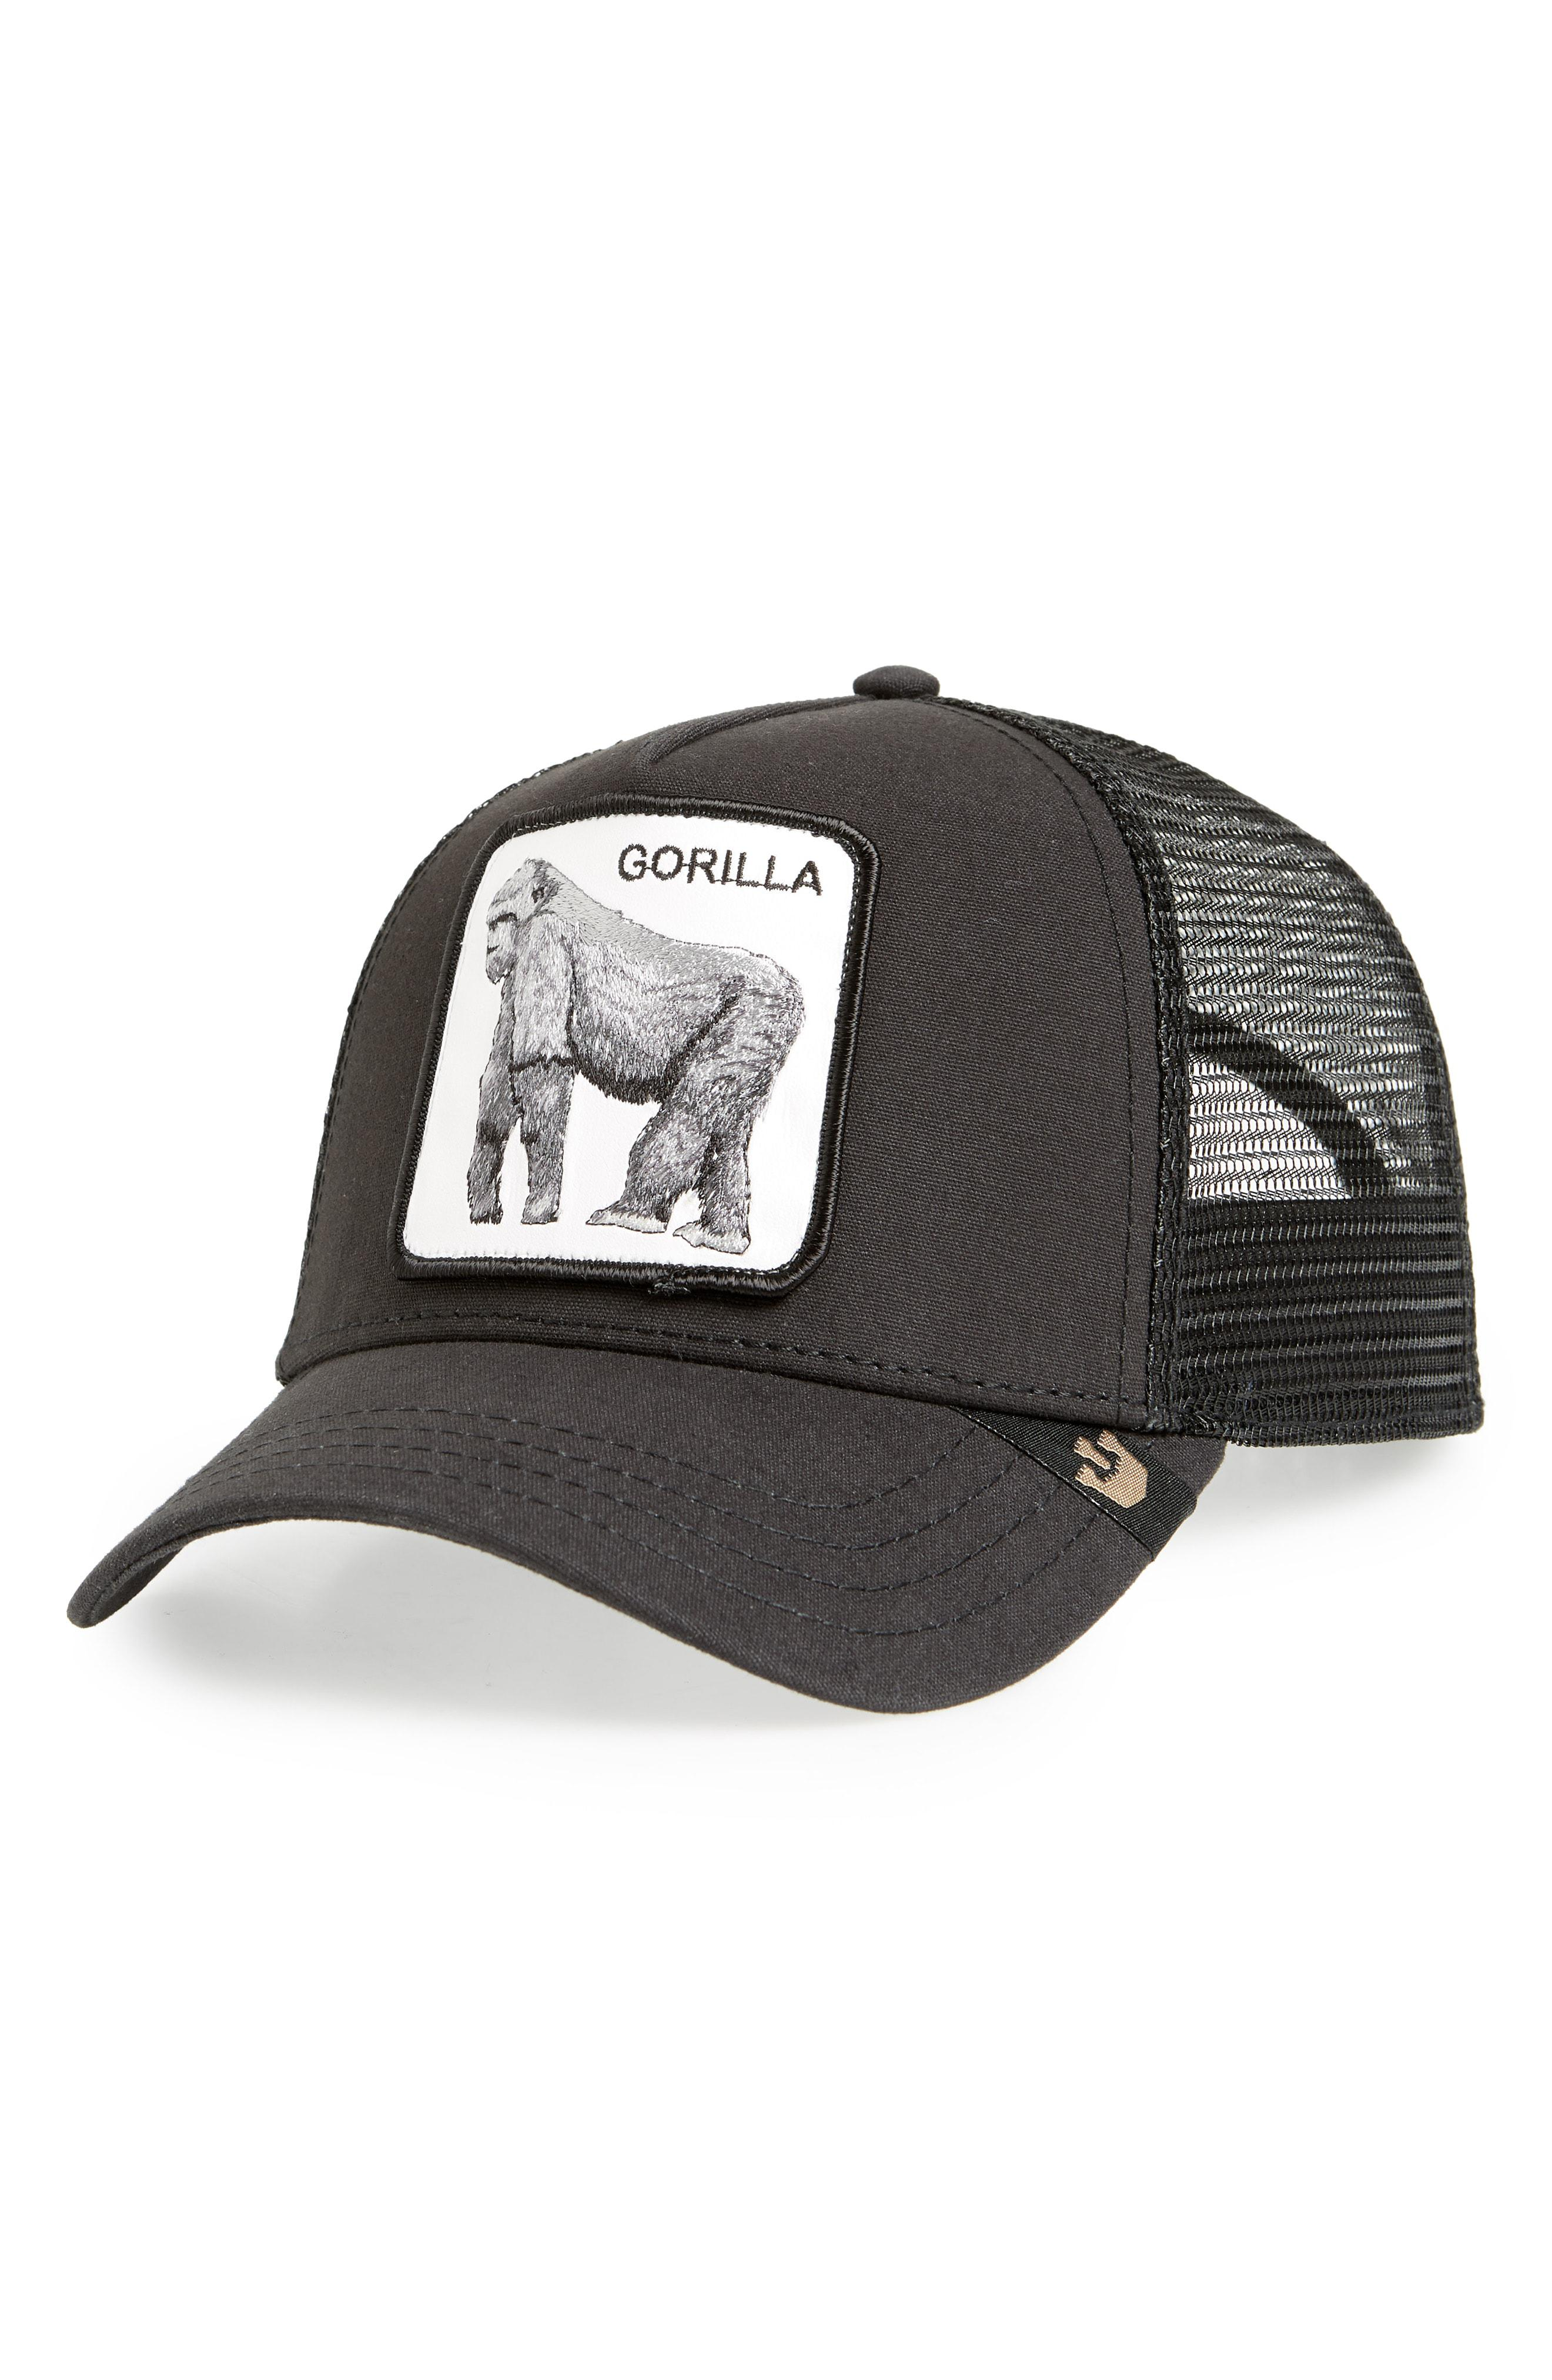 3bcdfb01c11 Lyst - Goorin Bros King Of The Jungle Trucker Hat in Black for Men ...